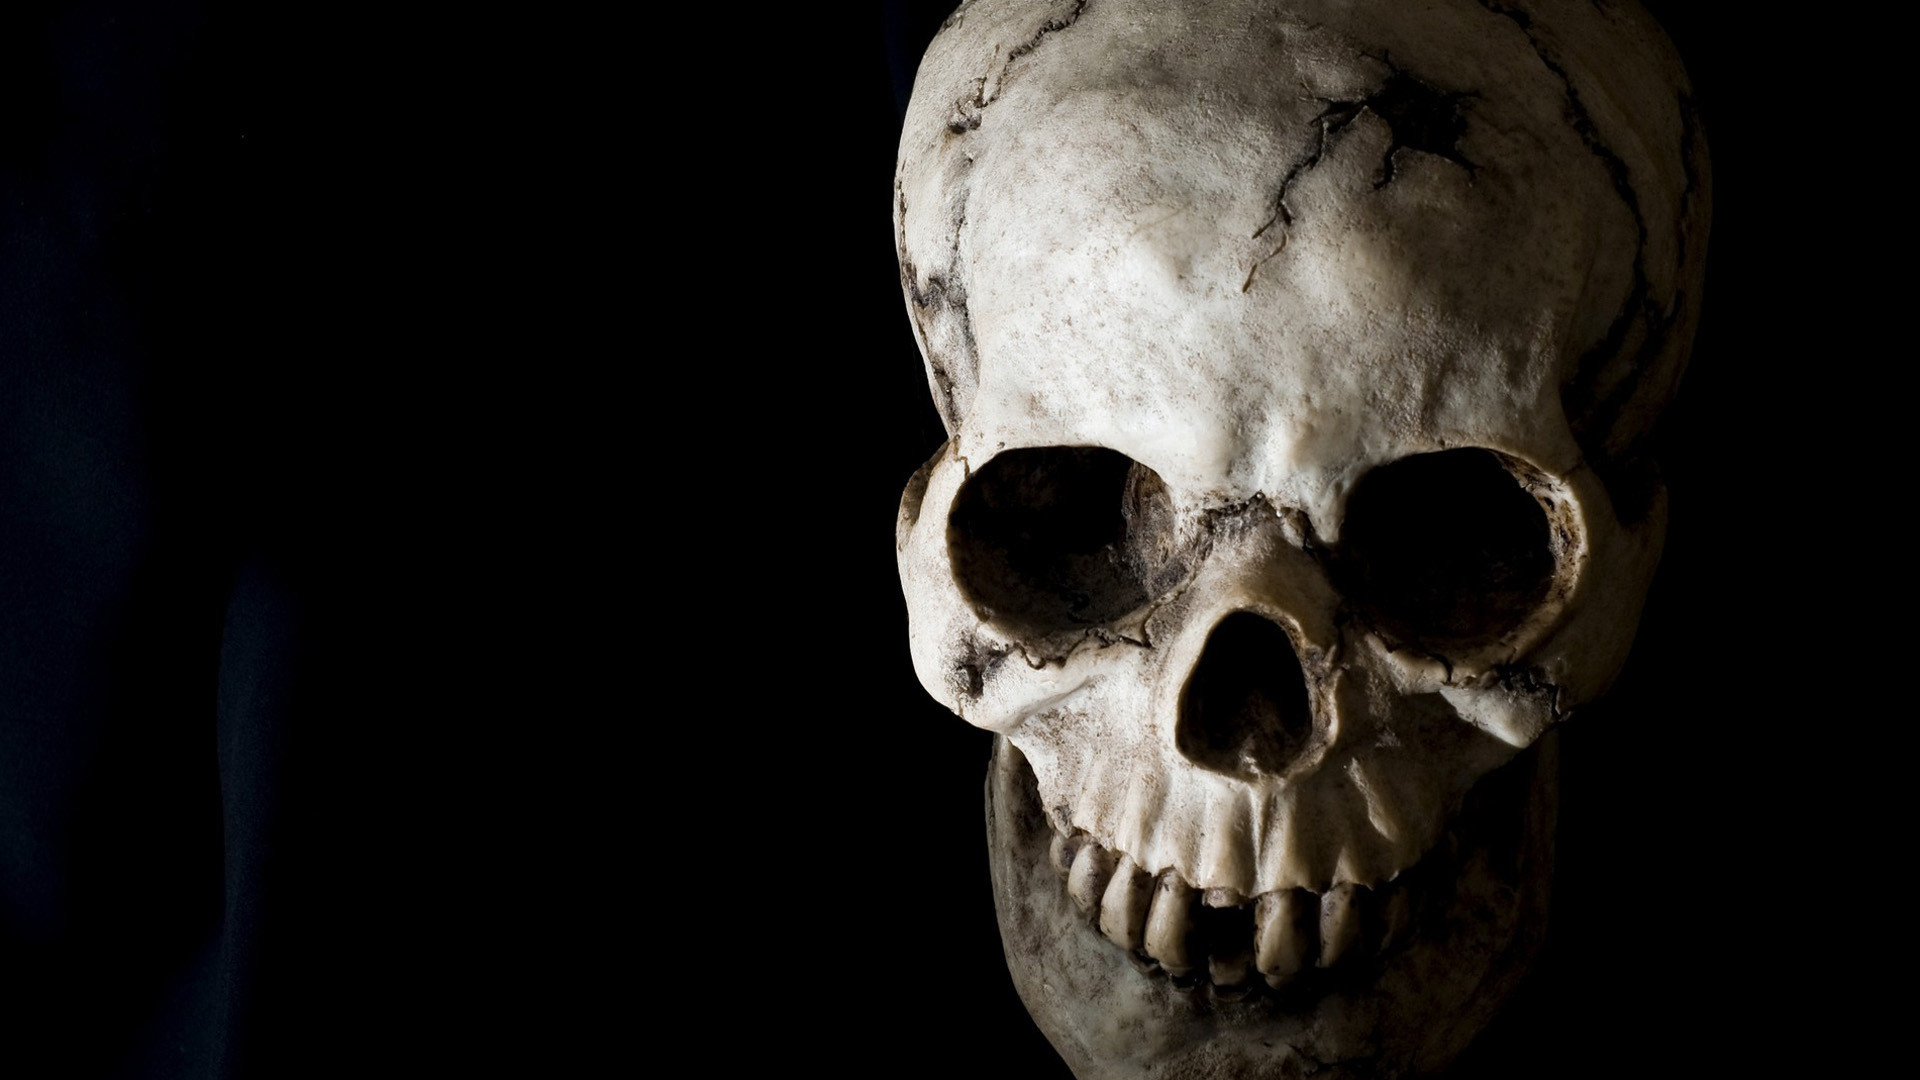 1920x1080 HD Skull Black Wallpapers | Download Free - 6273178 - HD Wallpapers